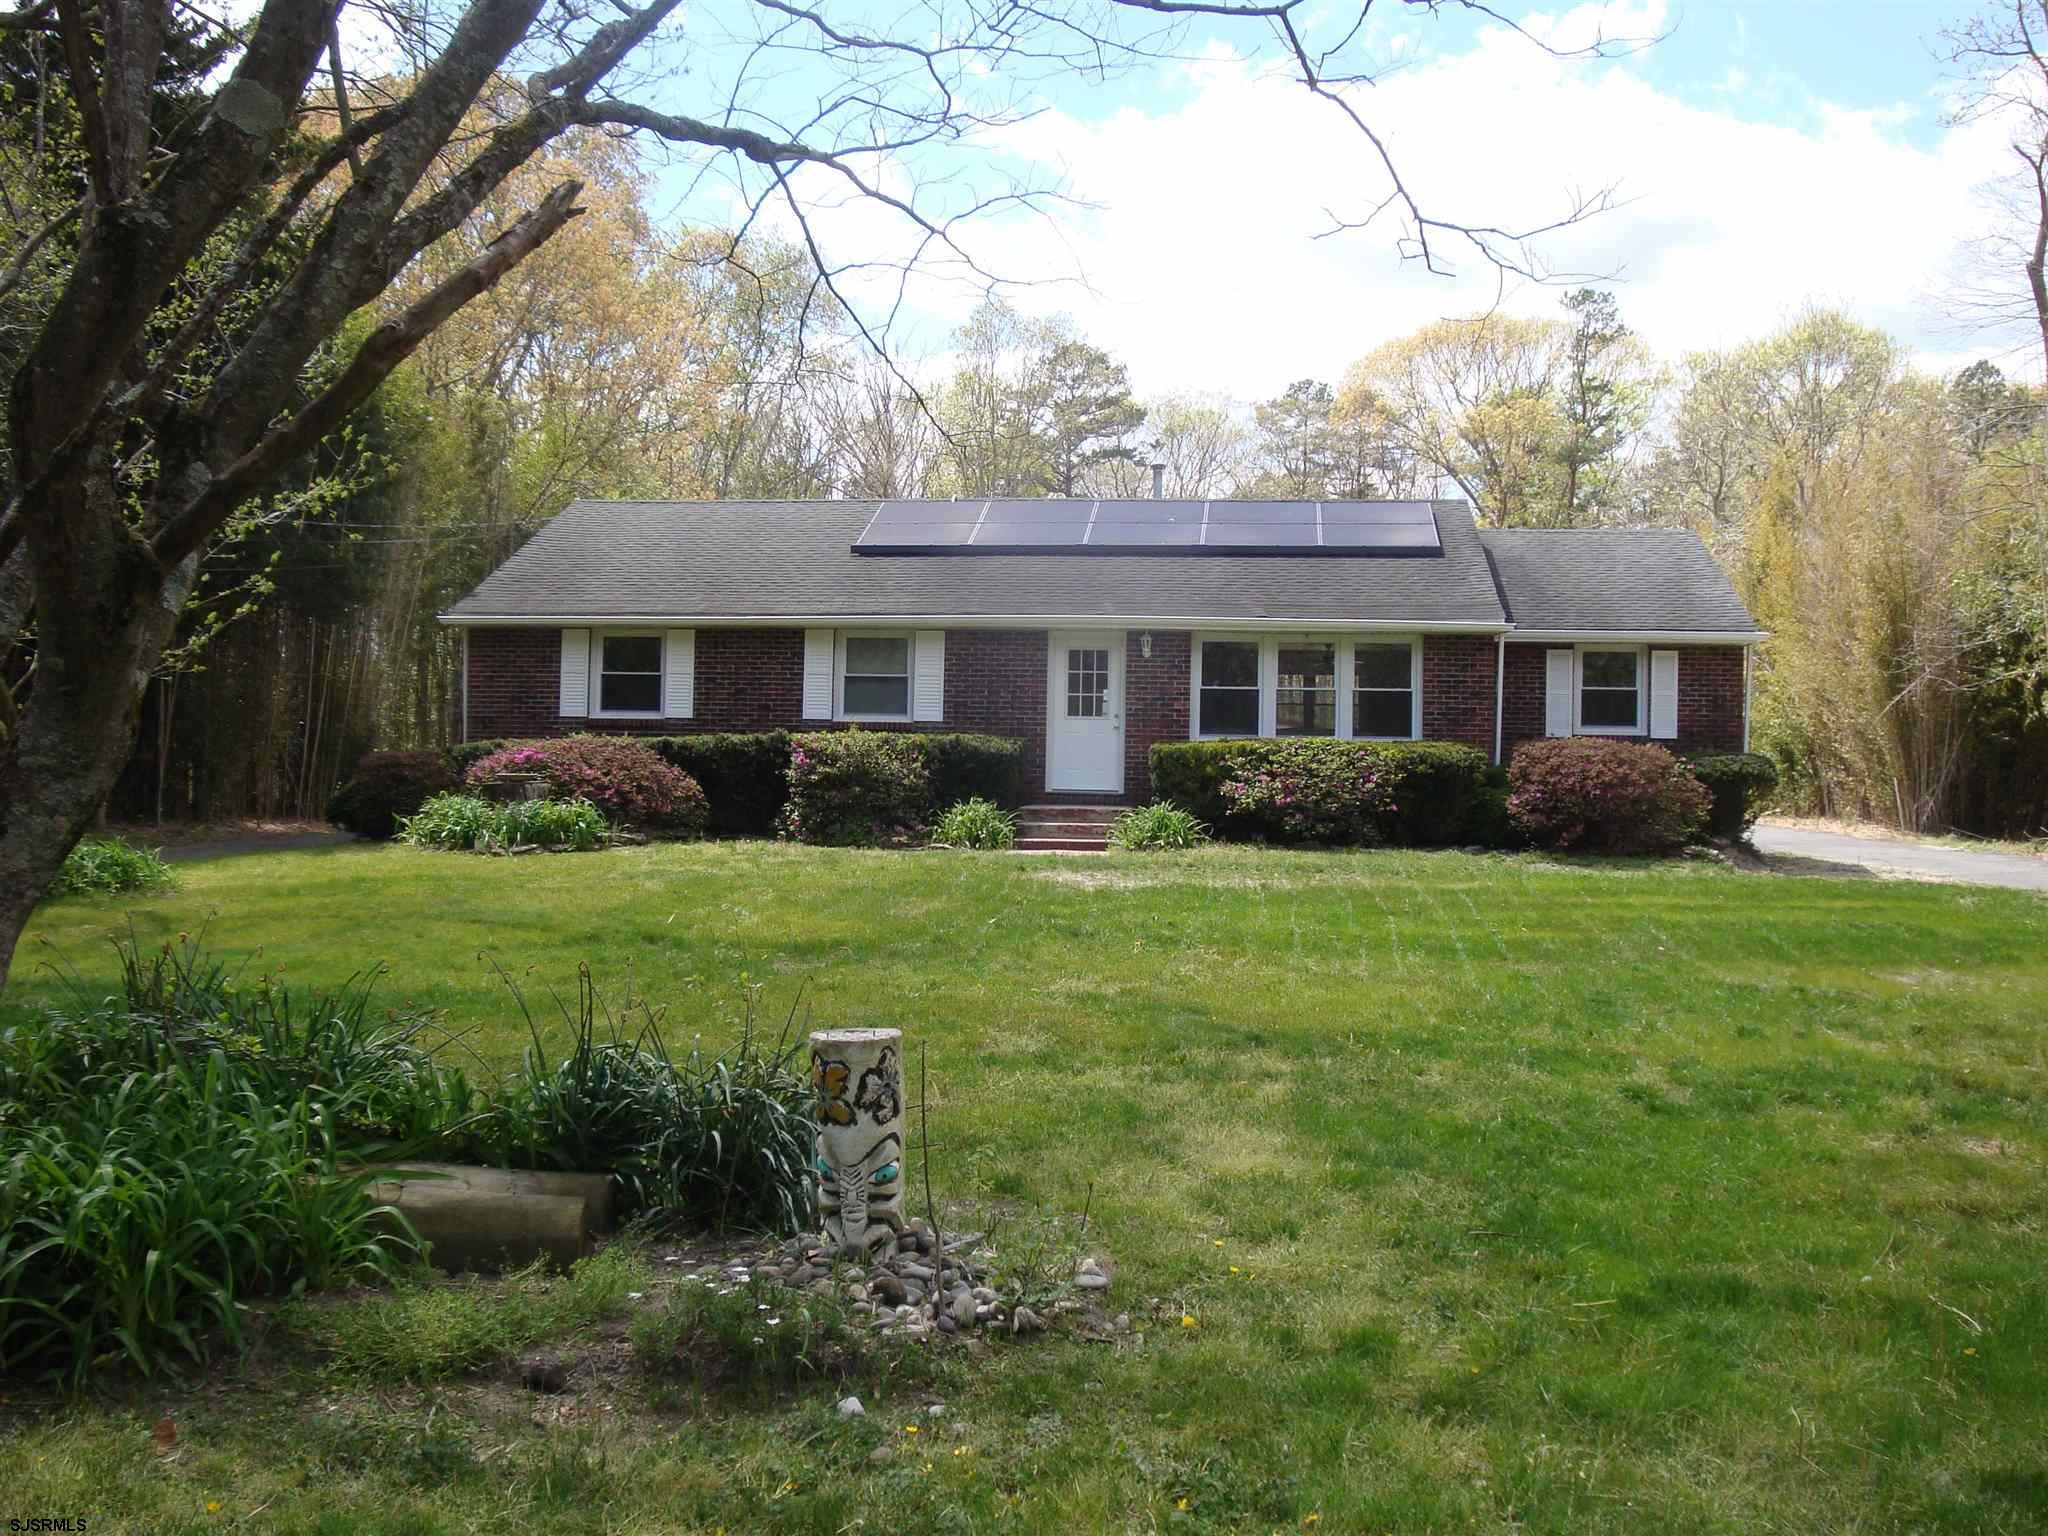 OPPORTUNITY KNOCKS to own this lovely Brick ranch home on over 4 acres. Four bedrooms and two full baths. Master bedroom with new carpet and walk-in closet. Master Bath fully remodeled with tile floors, new vanity, deep soaking tub. Home has been freshly painted throughout. Original hardwood floors throughout as well. Full finished basement for fun and entertaining. New water treatment system installed 2020. BONUS 40x40 Polebarn insulated and heated can accommodate 6-8 cars and plenty of storage. Selling As-Is but definitely Move-In ready! Come view this one Today!